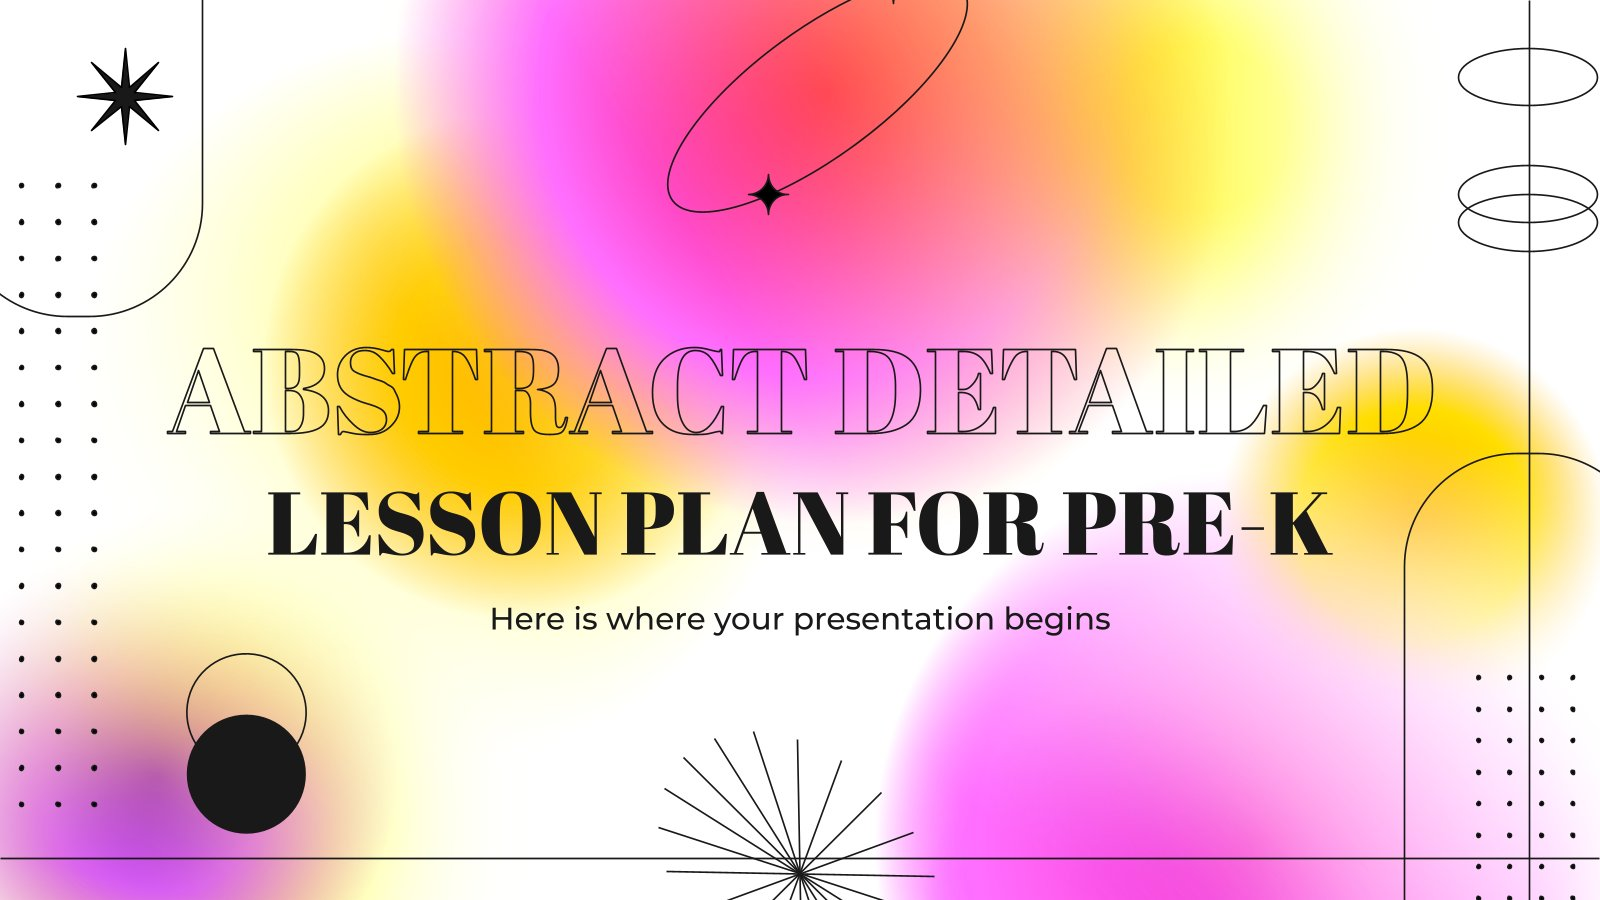 Abstract Detailed Lesson Plan for Pre-K presentation template